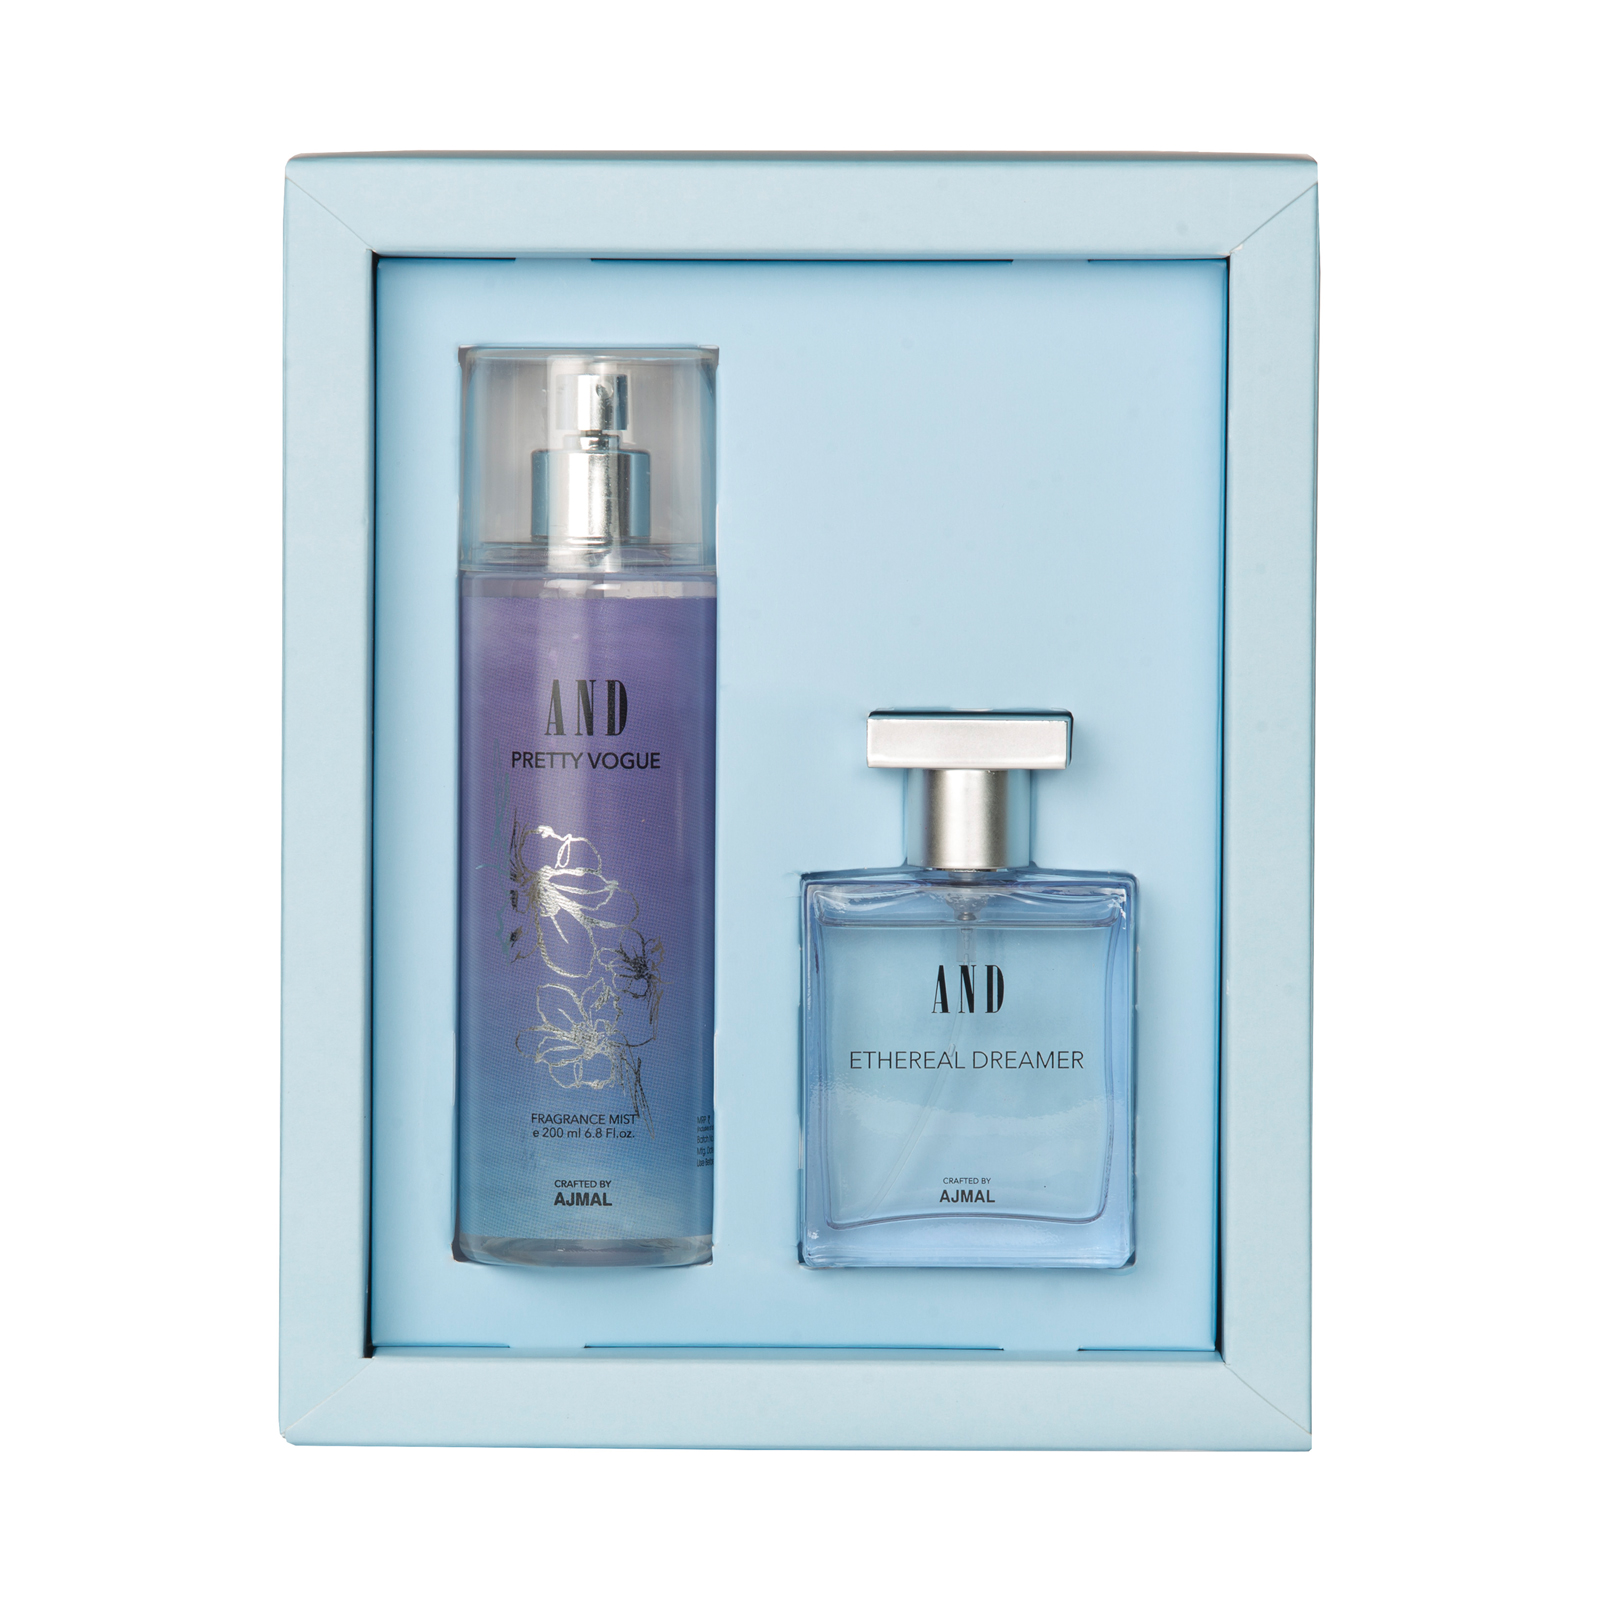 AND Crafted By Ajmal | AND Ethereal Dreamer Eau De Parfum 50ML & Pretty Vogue Body Mist 200ML for Women Crafted by Ajmal